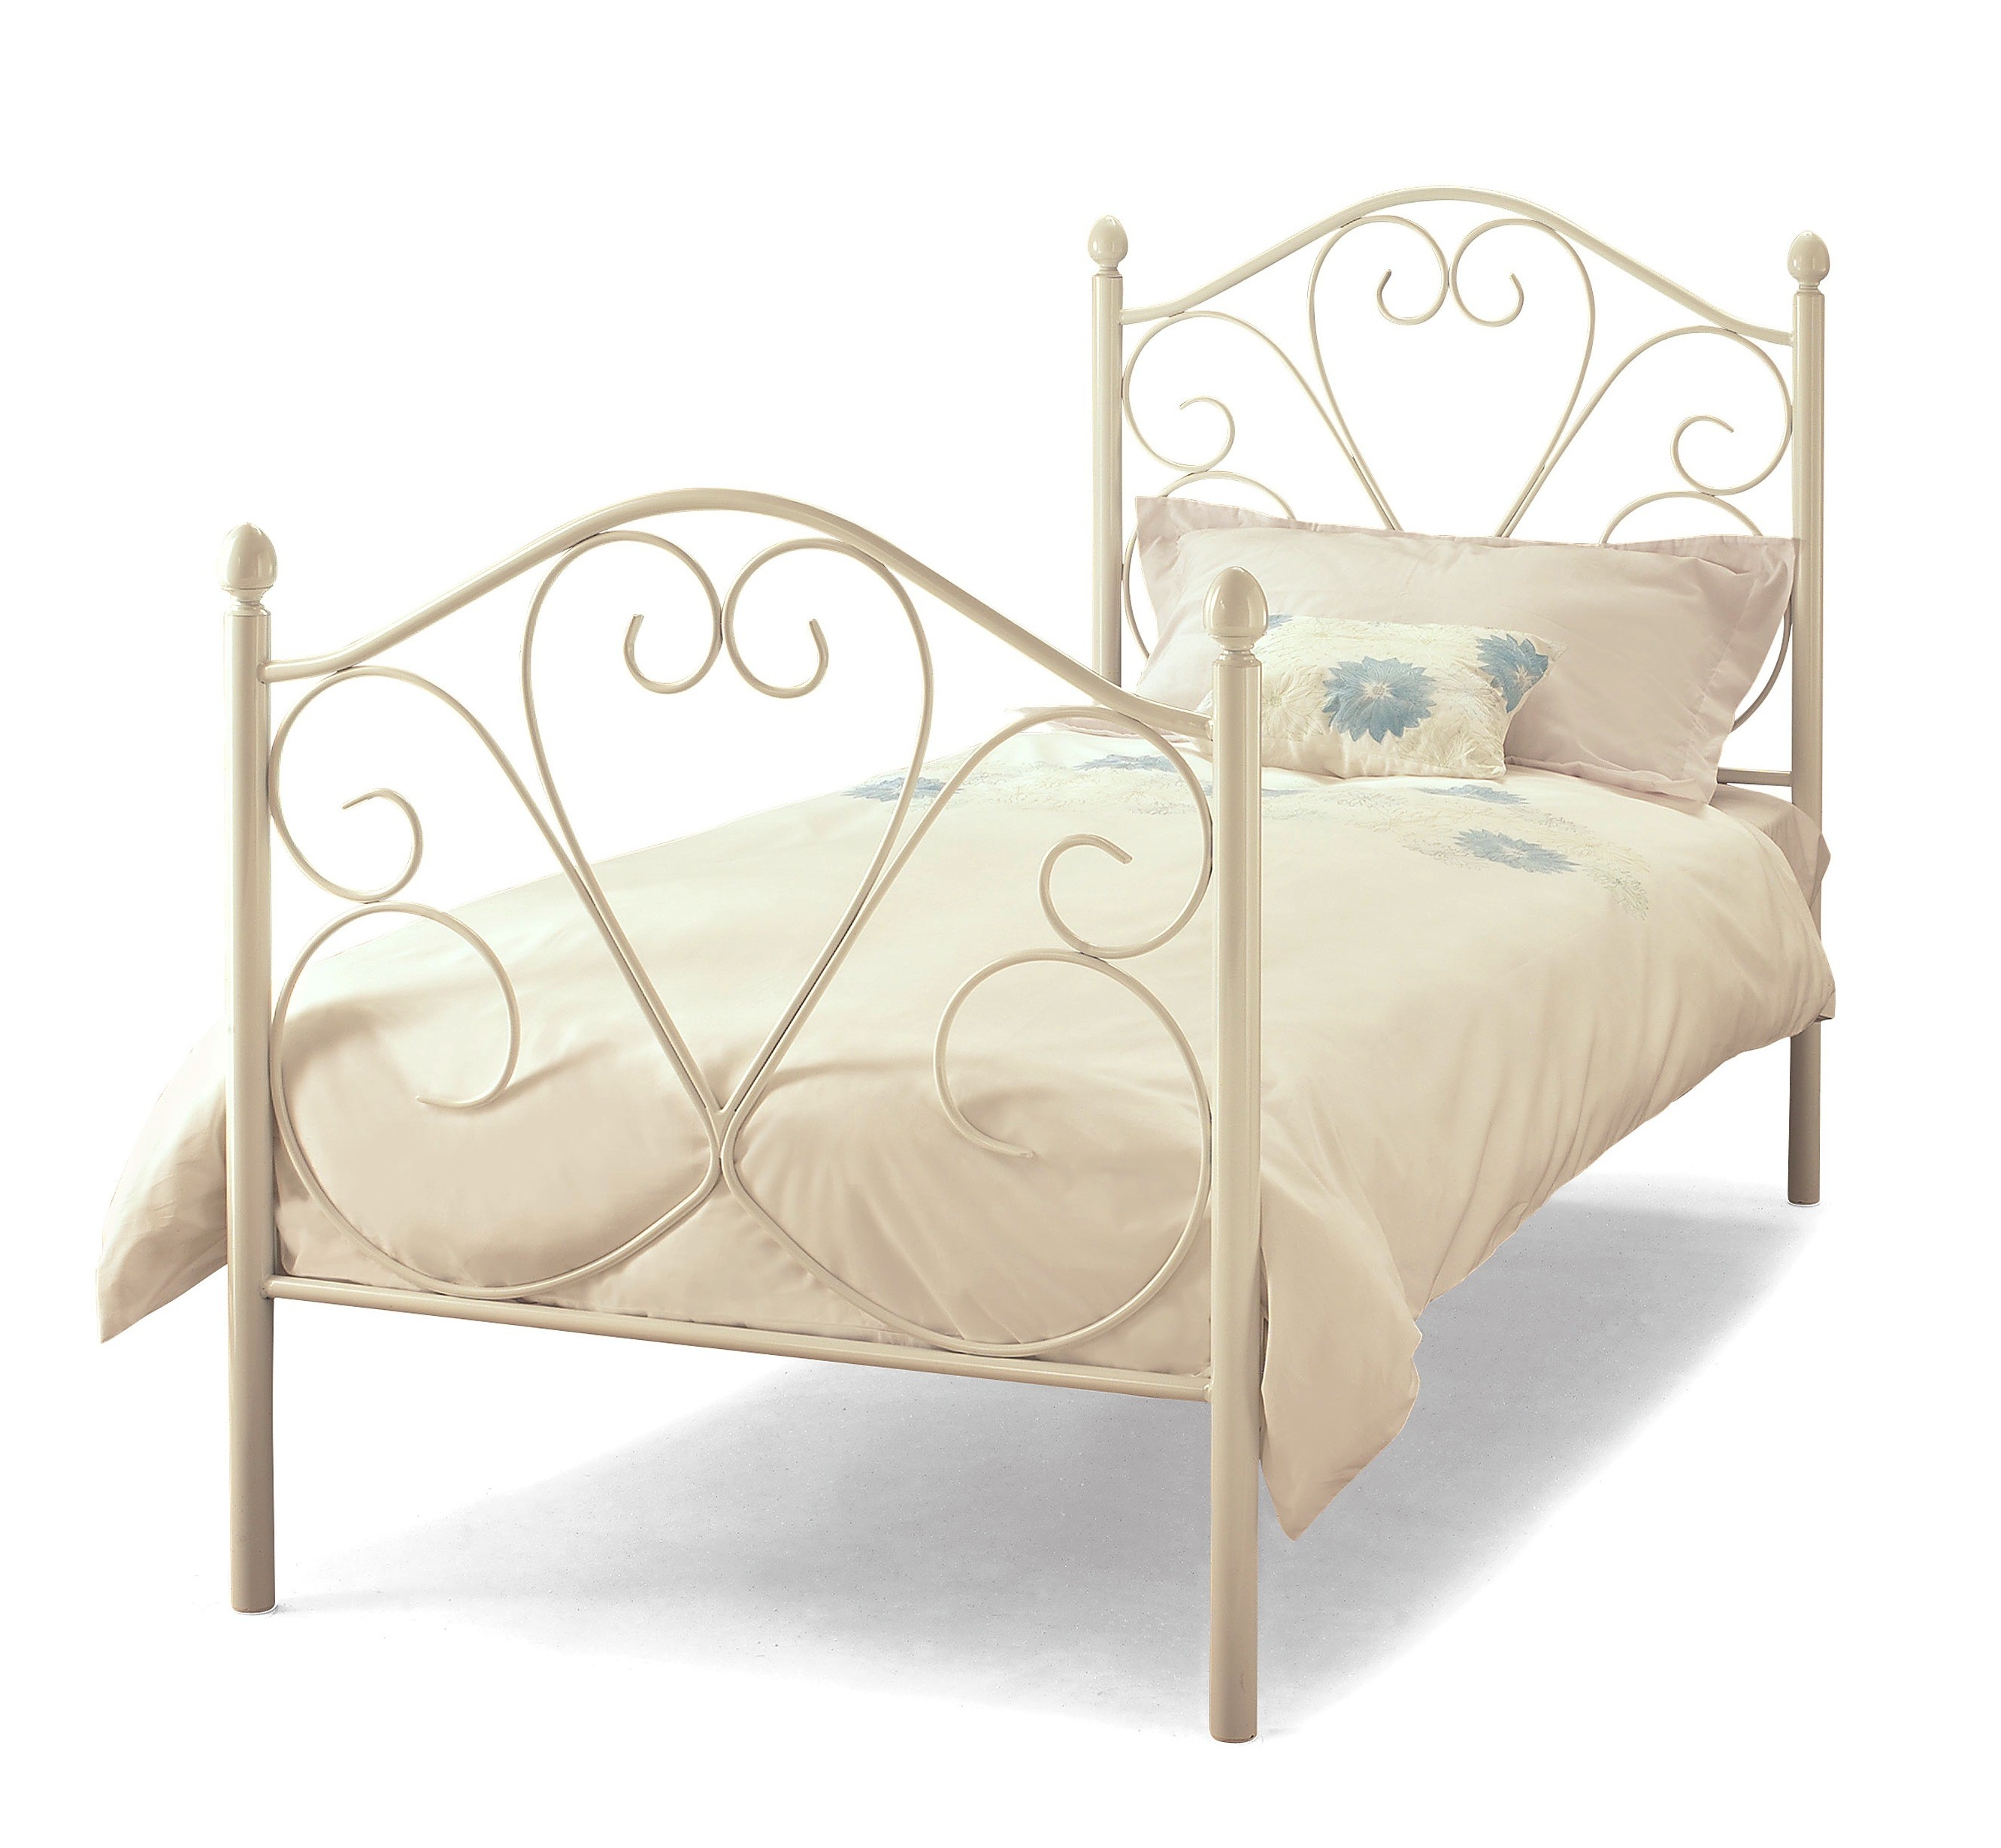 Permalink to White Metal Framed Bed Single